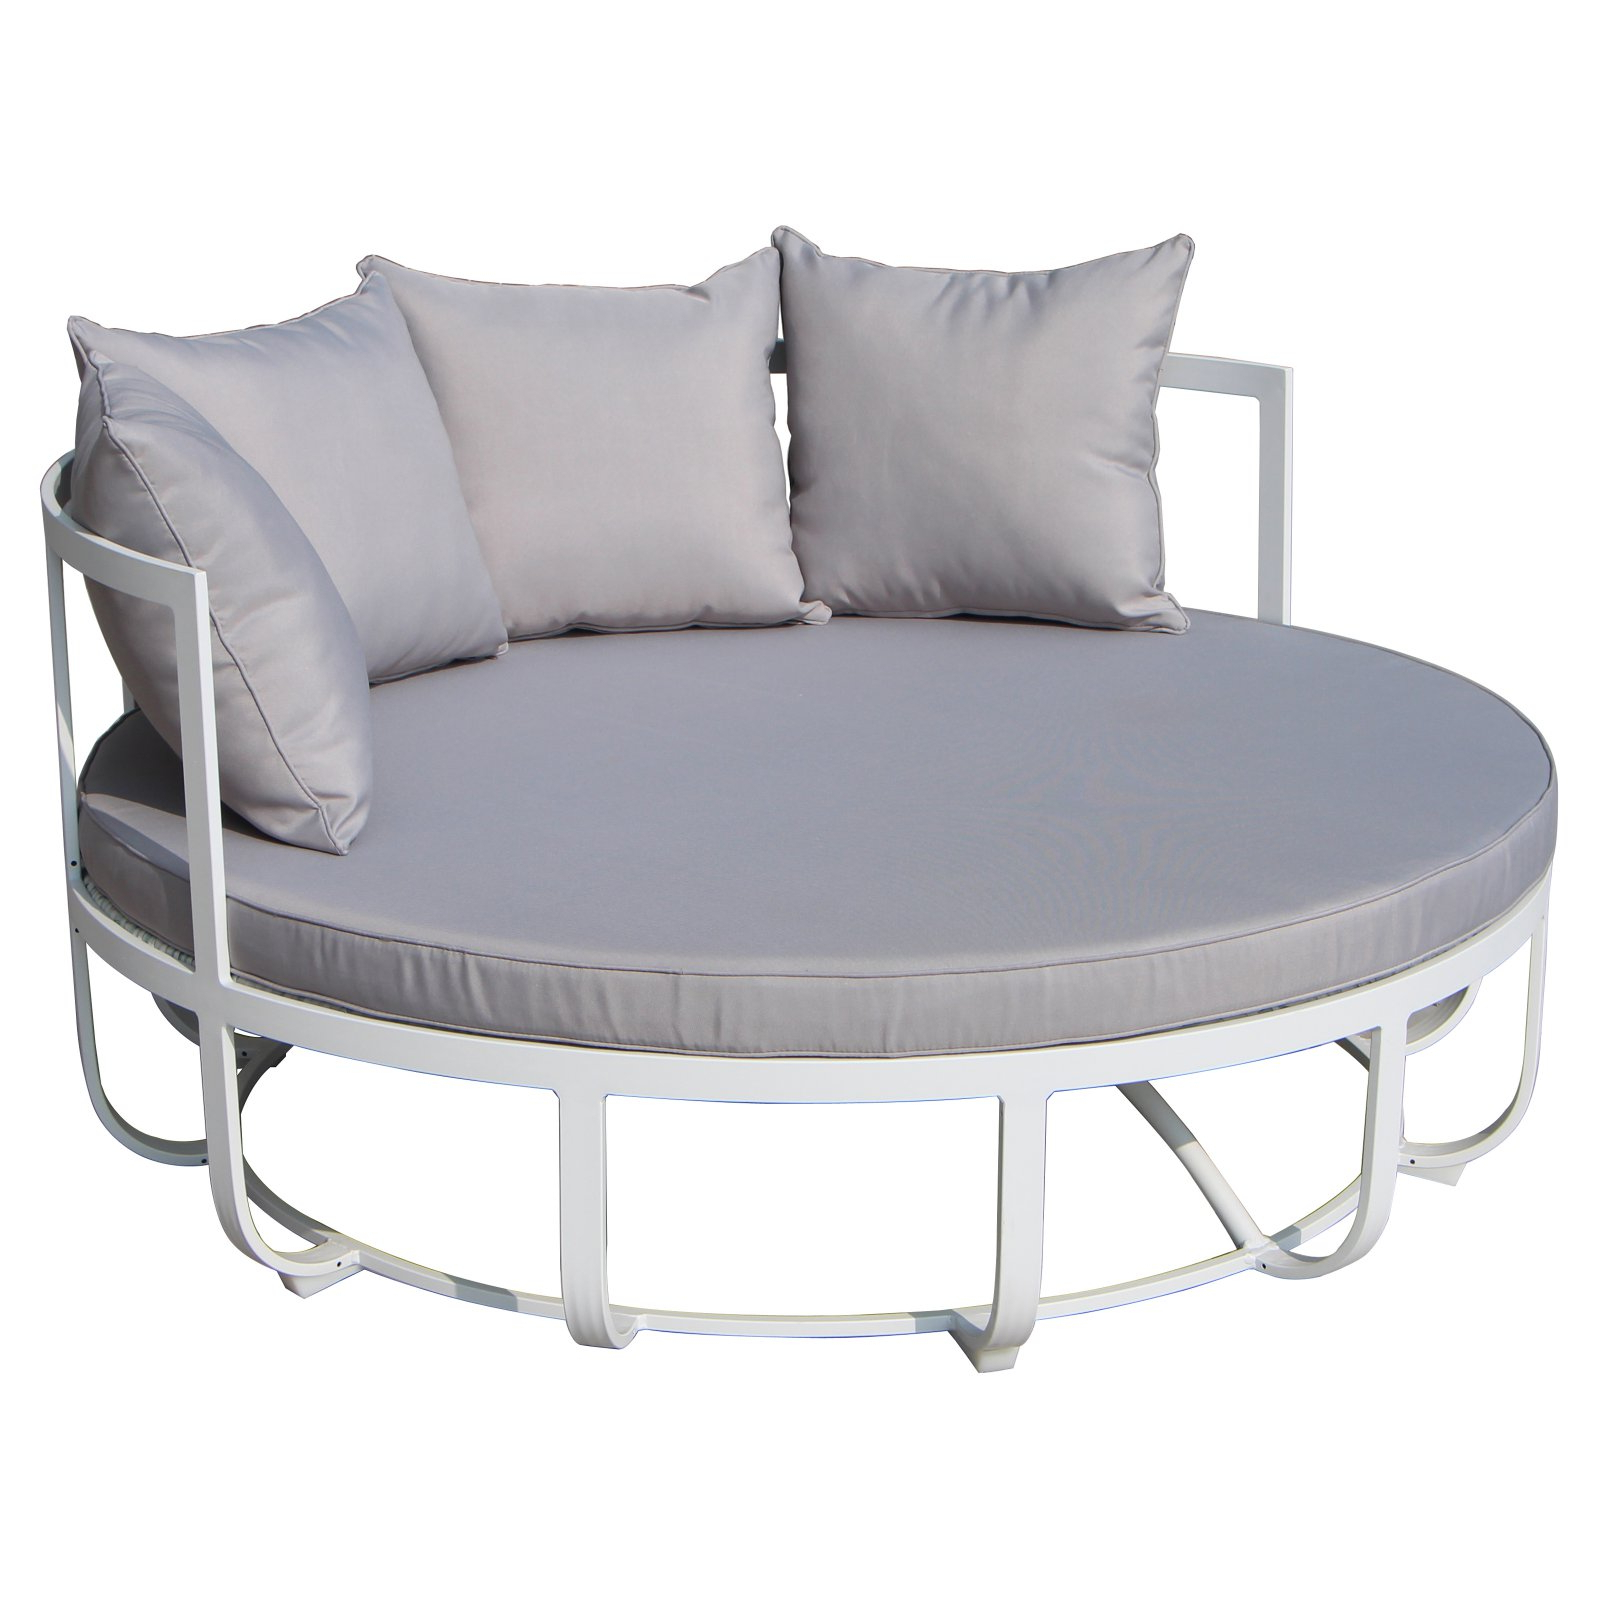 Best And Newest Olu Bamboo Large Round Patio Daybeds With Cushions With Regard To Pangea Outdoor Naples Outdoor Daybed Taupe (View 3 of 20)